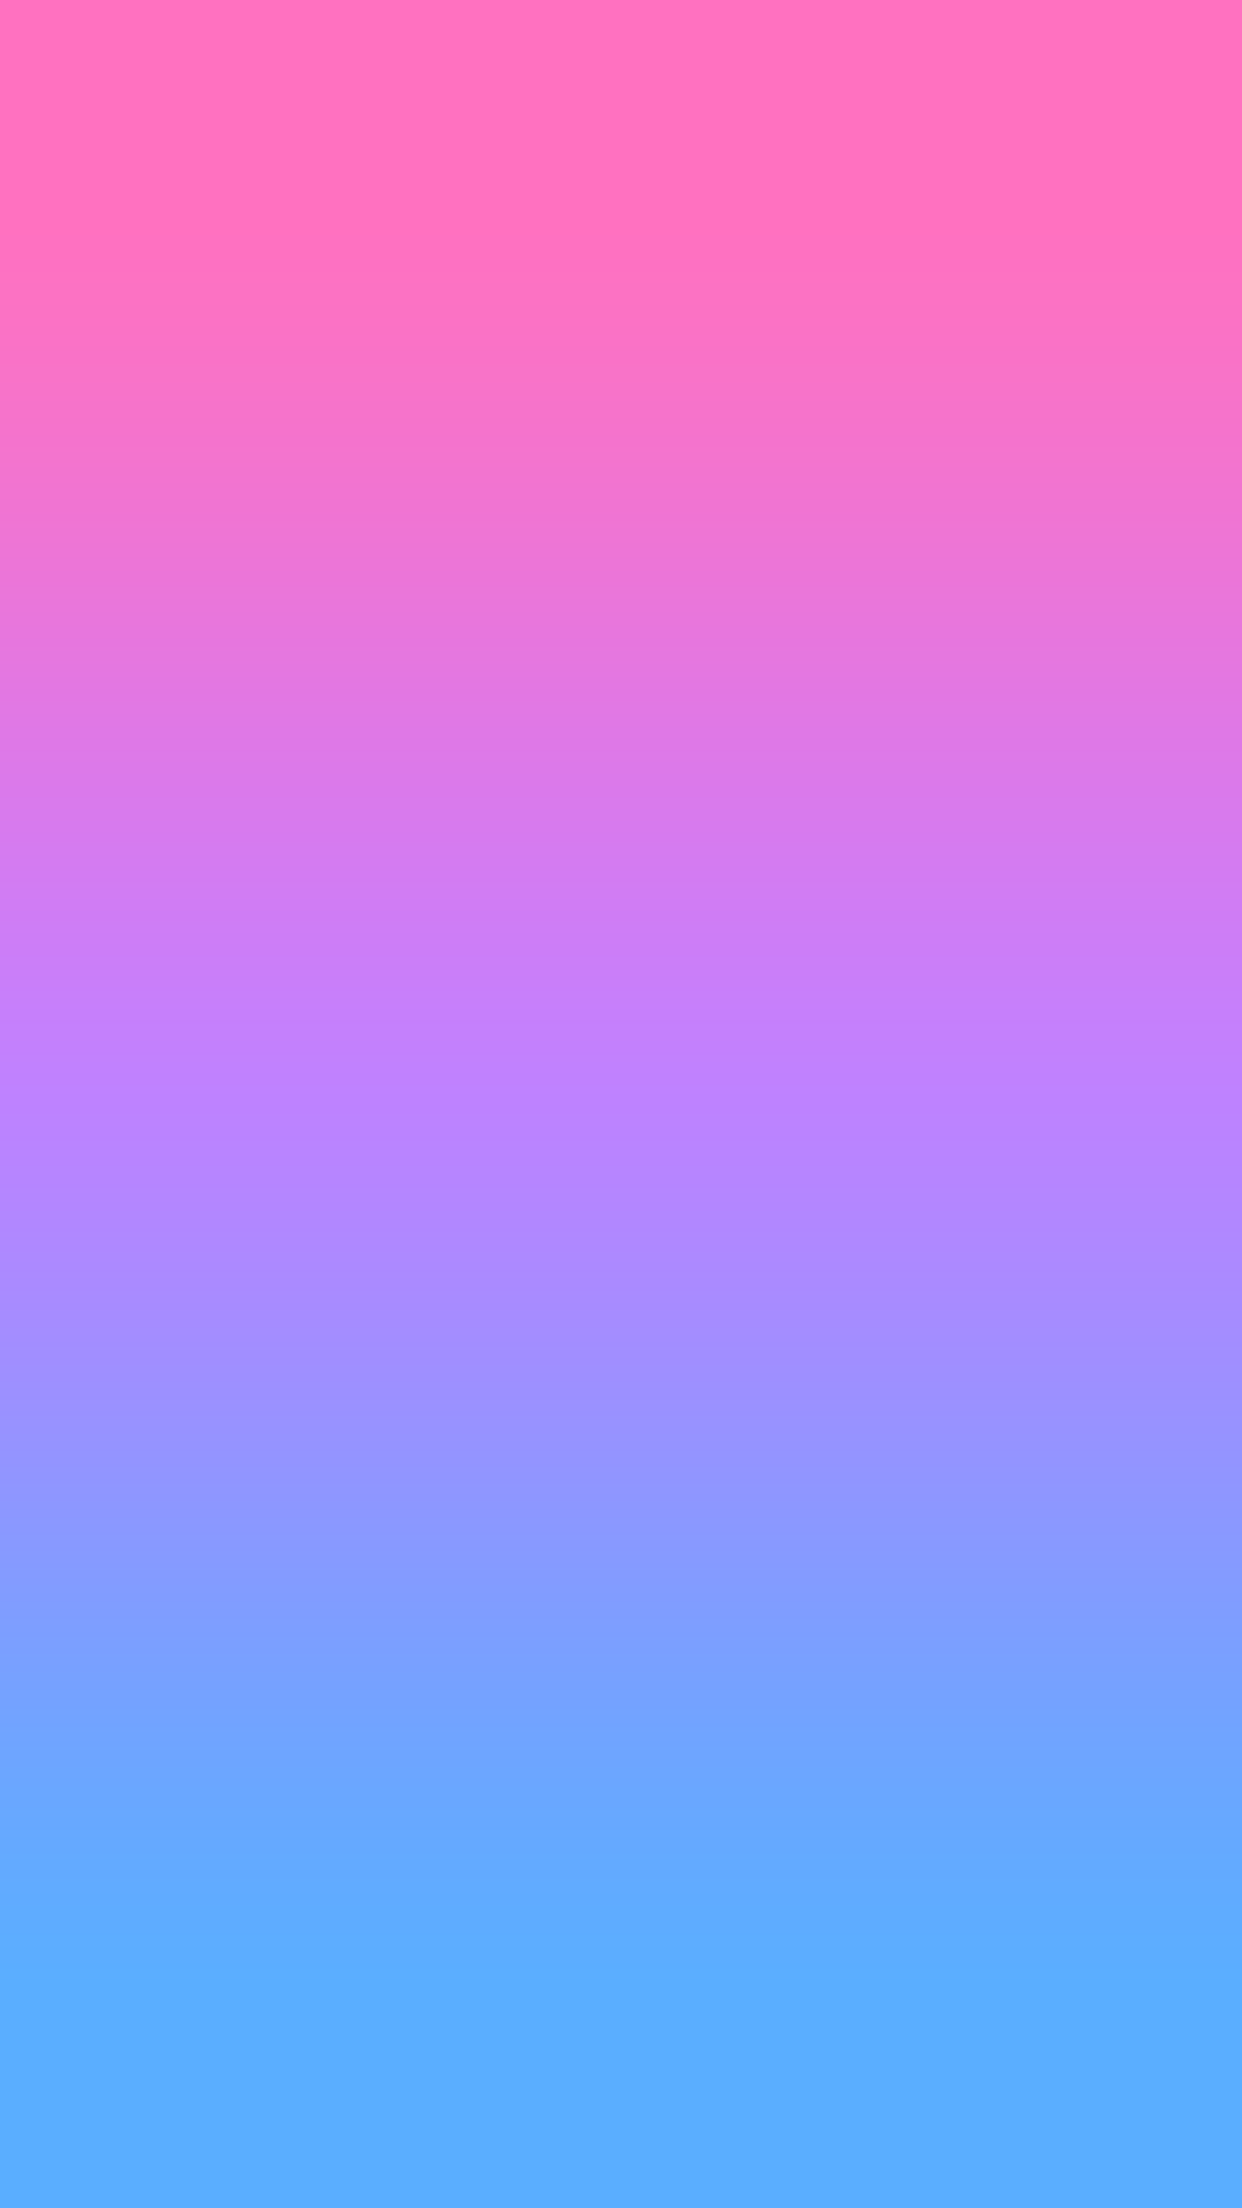 Pink and blue ombre iphone wallpaper Iphone wallpapers - Pink And Blue PNG